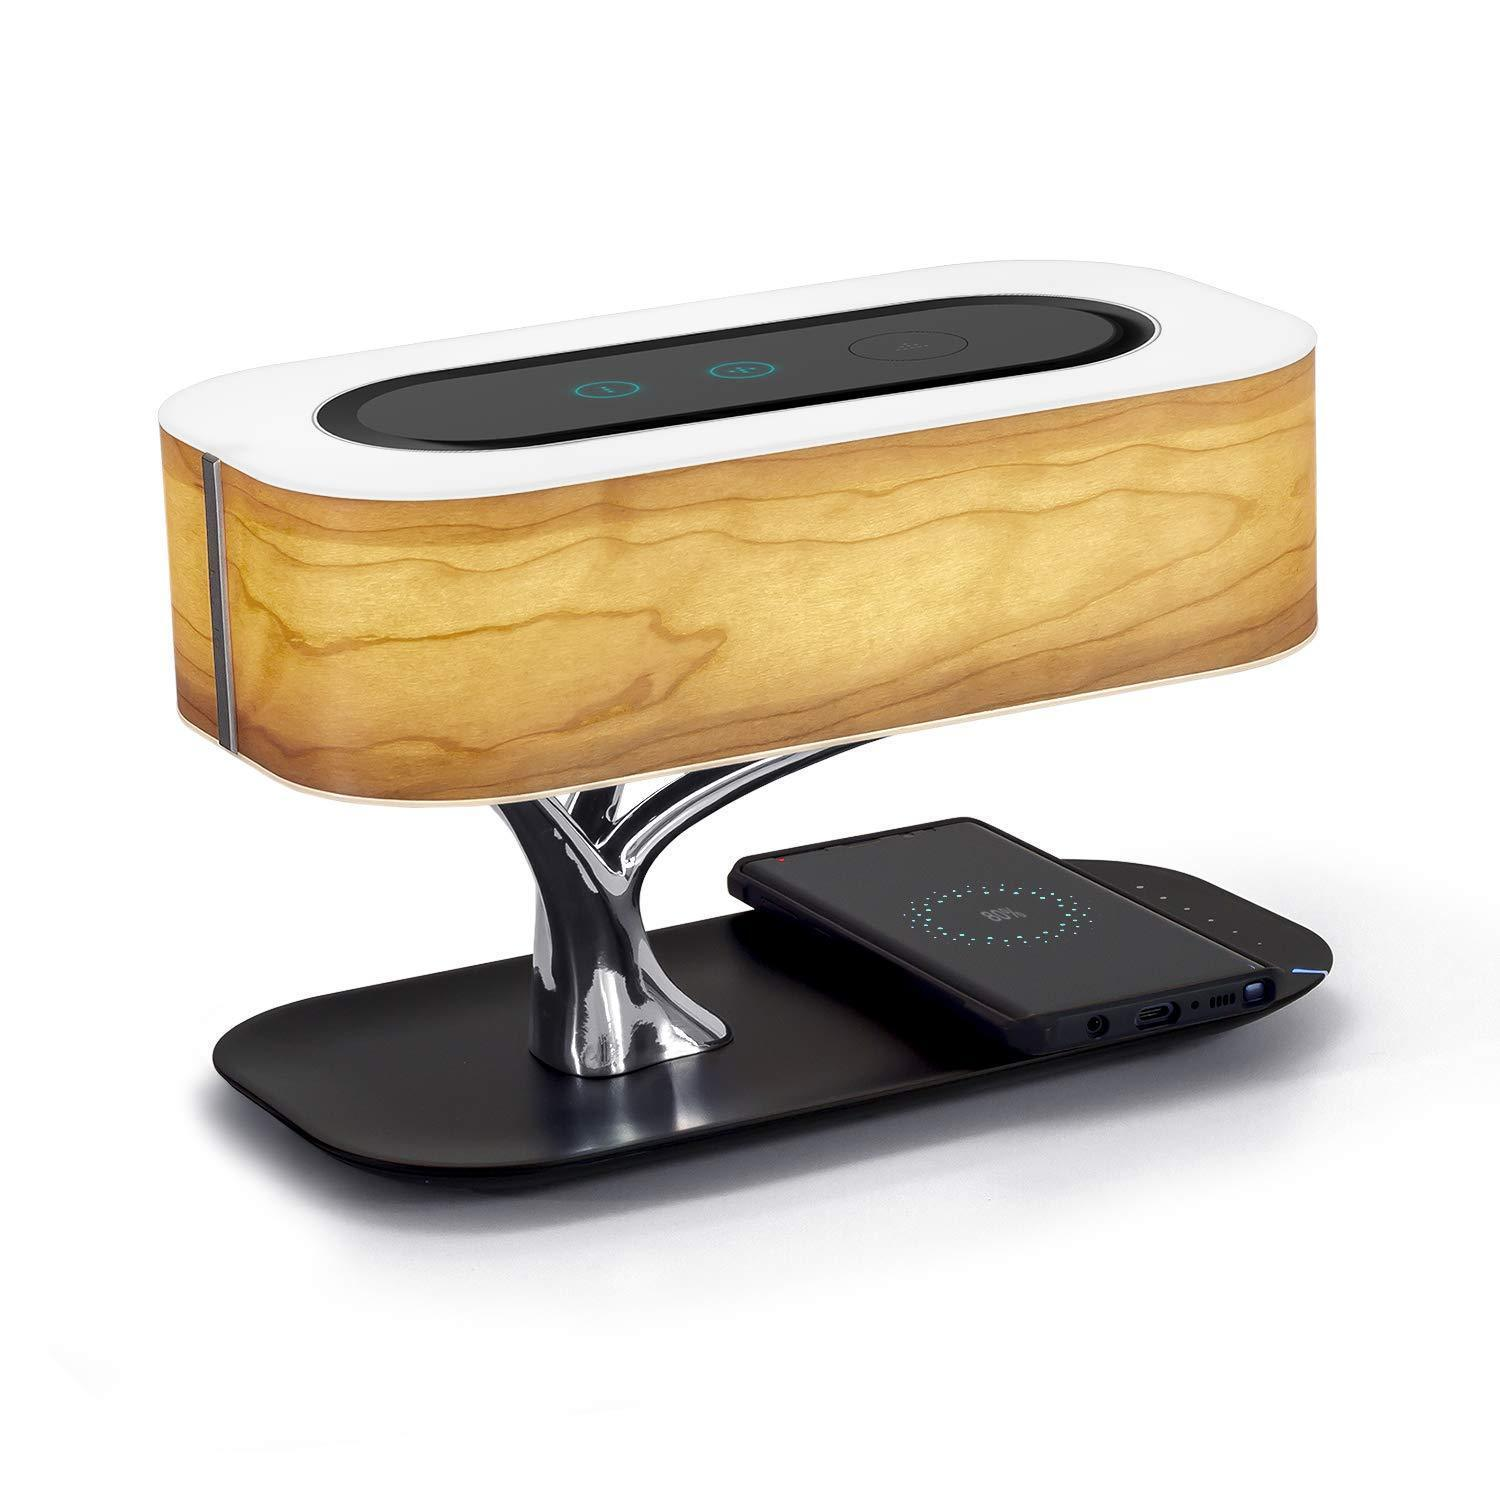 Tree Lamp - Bedside Table Lamp With Bluetooth Speaker & Wireless Charger - Combination Speakers